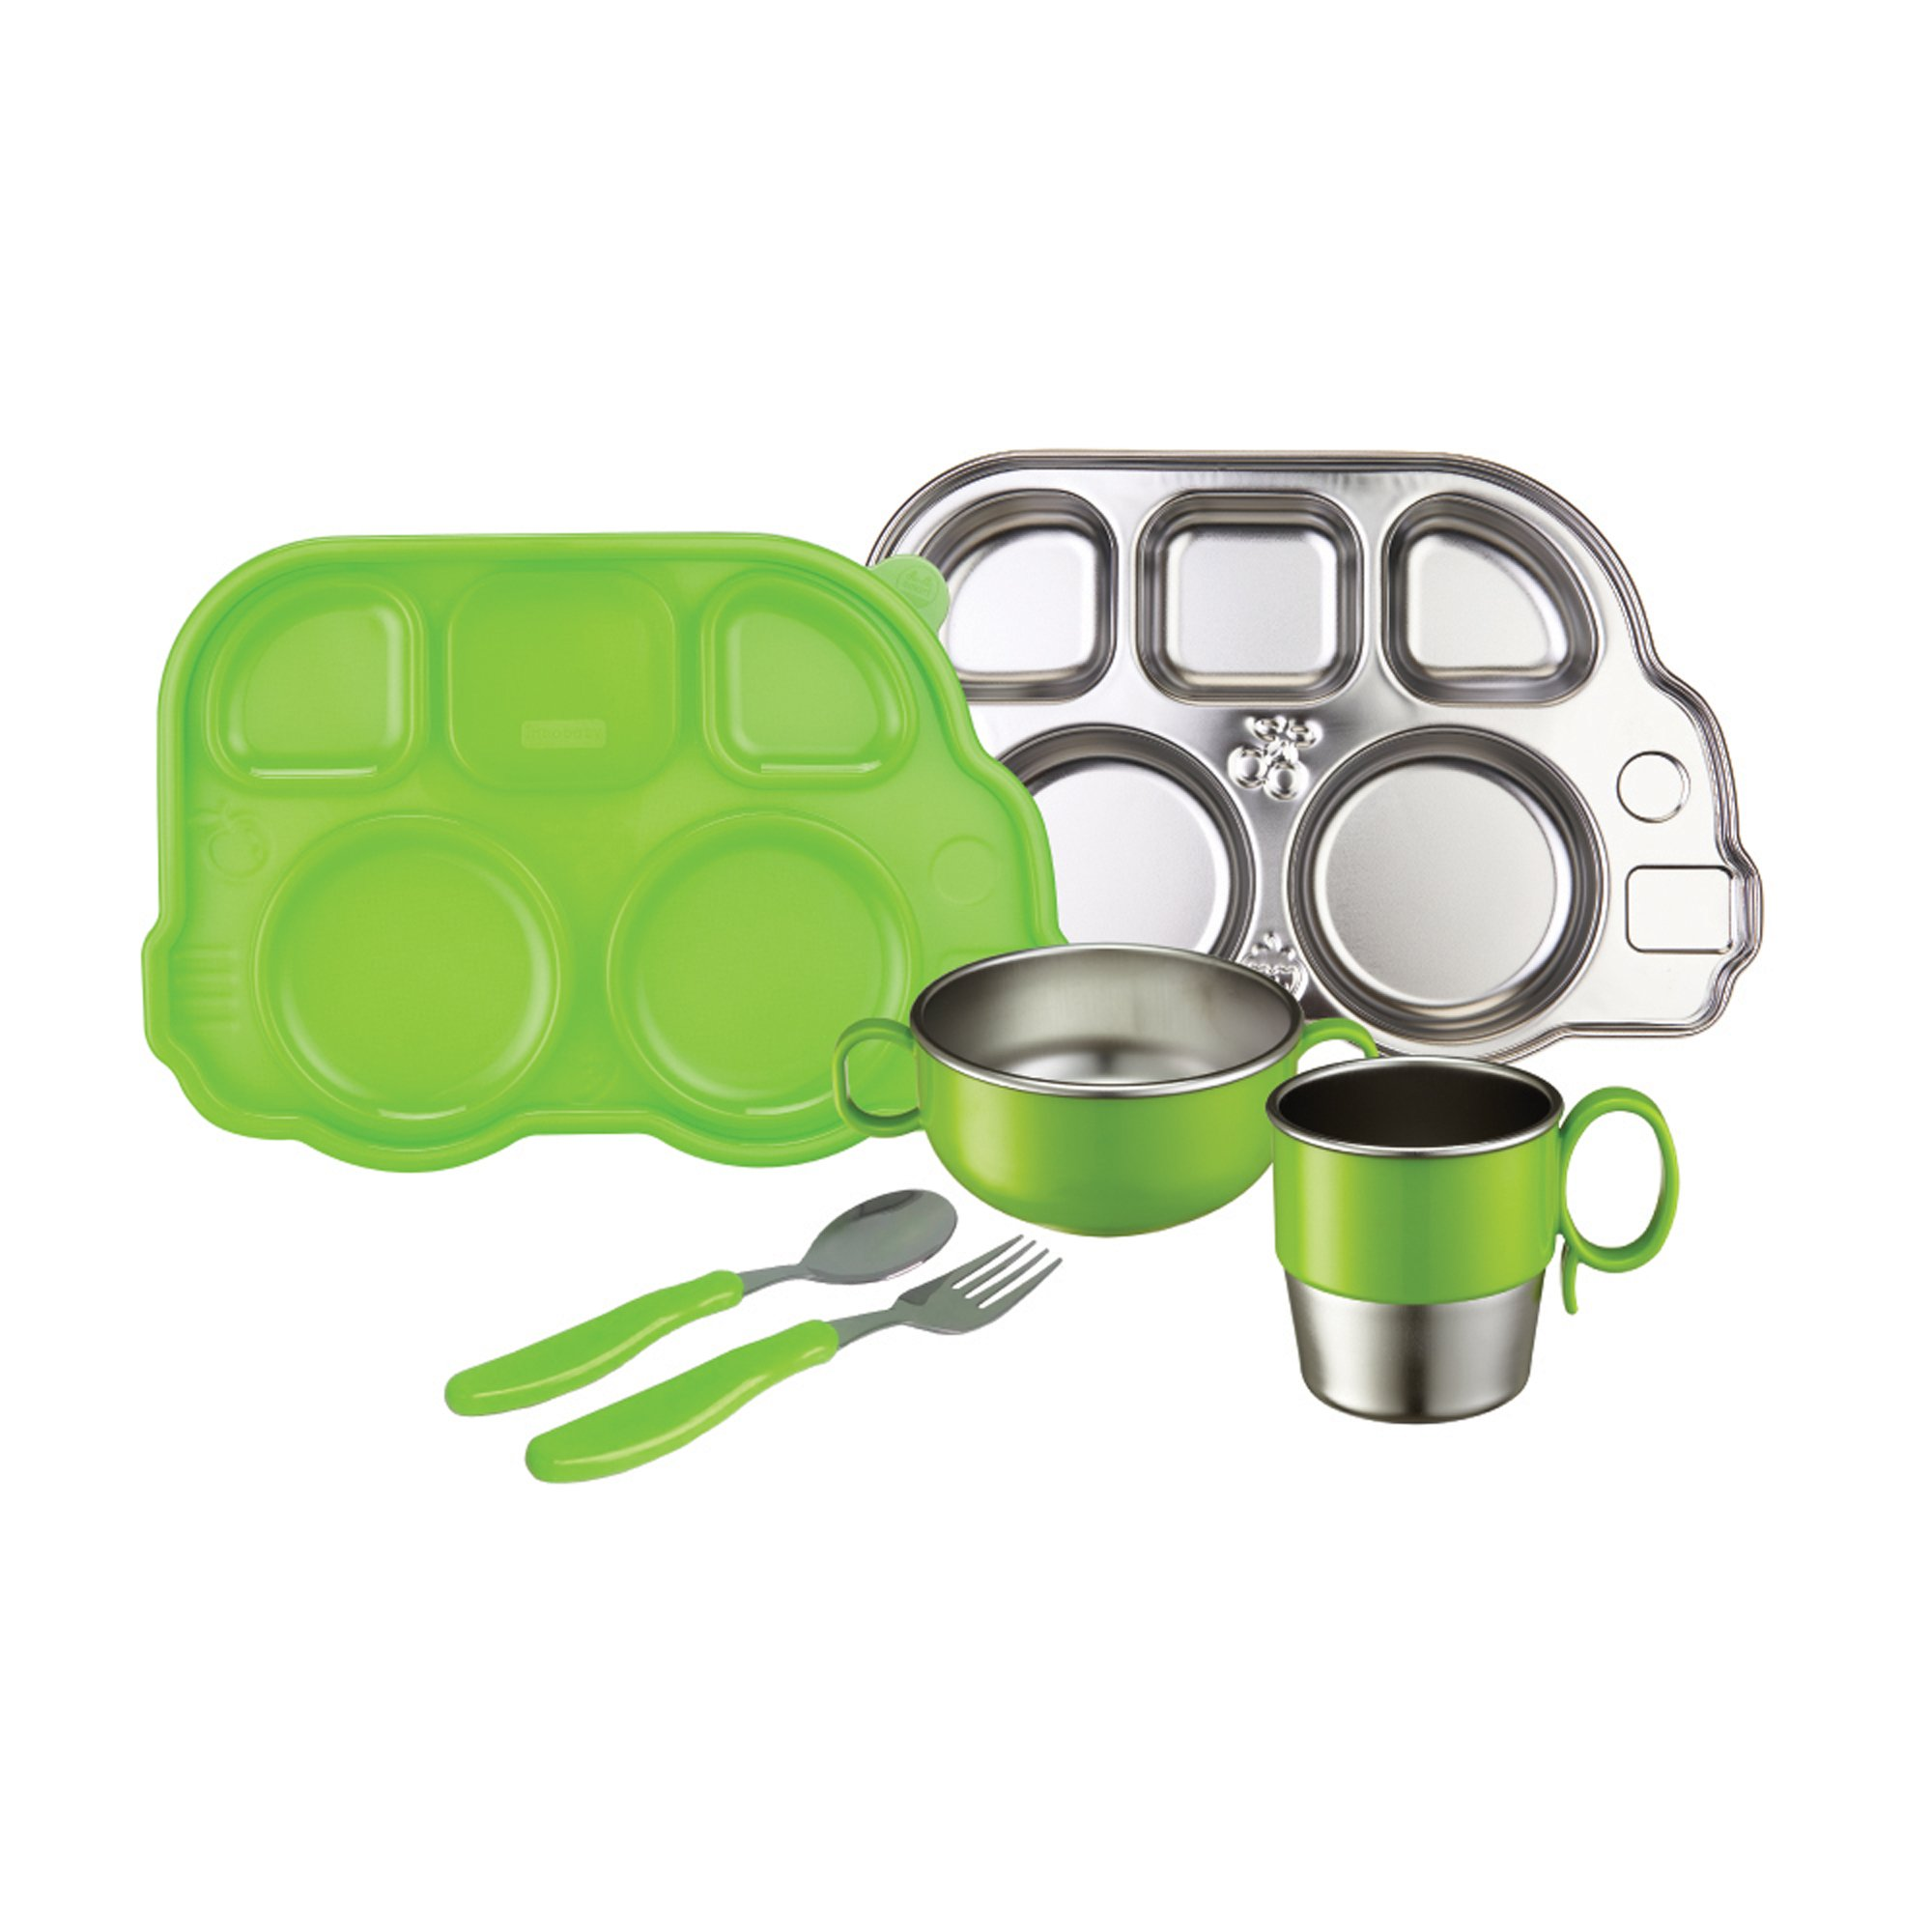 Innobaby Din Din Smart Stainless Steel Dinnerware Gift Set (Divided Plate, Sectional Lid, Cup, Bowl and Utensil Set) for Babies, Toddlers and Kids. BPA Free, Green